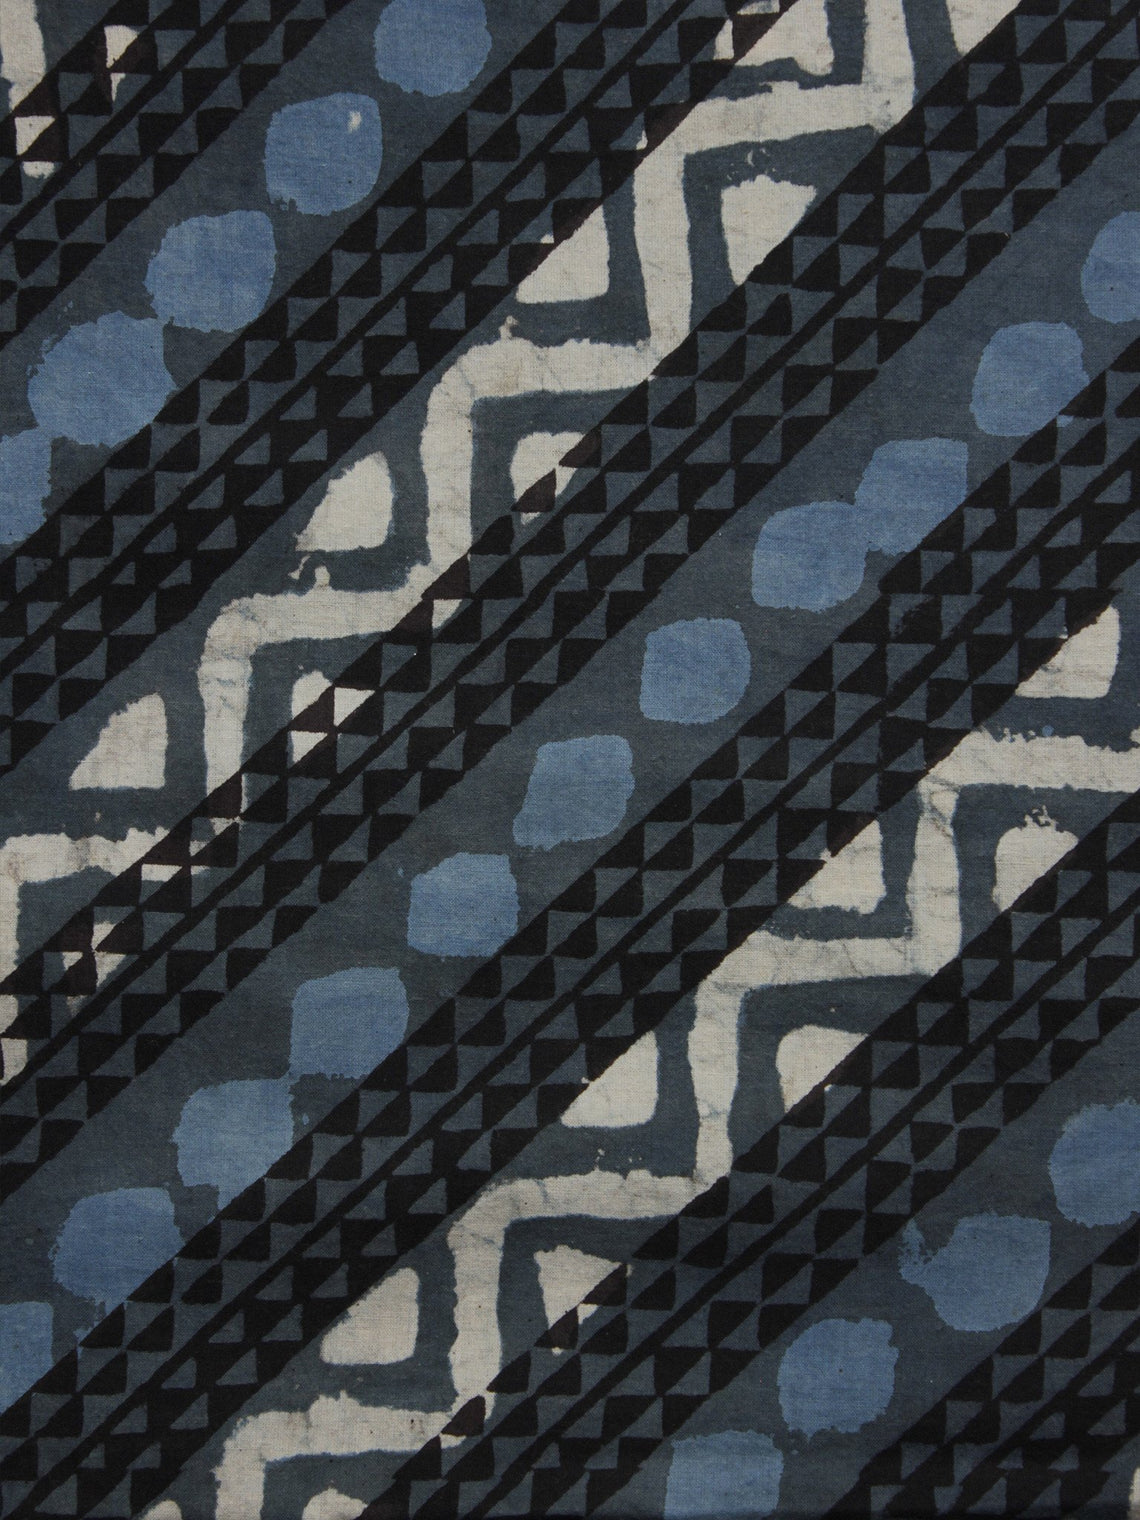 Grey Blue Black Ivory Hand Block Printed Cotton Fabric Per Meter - F001F901